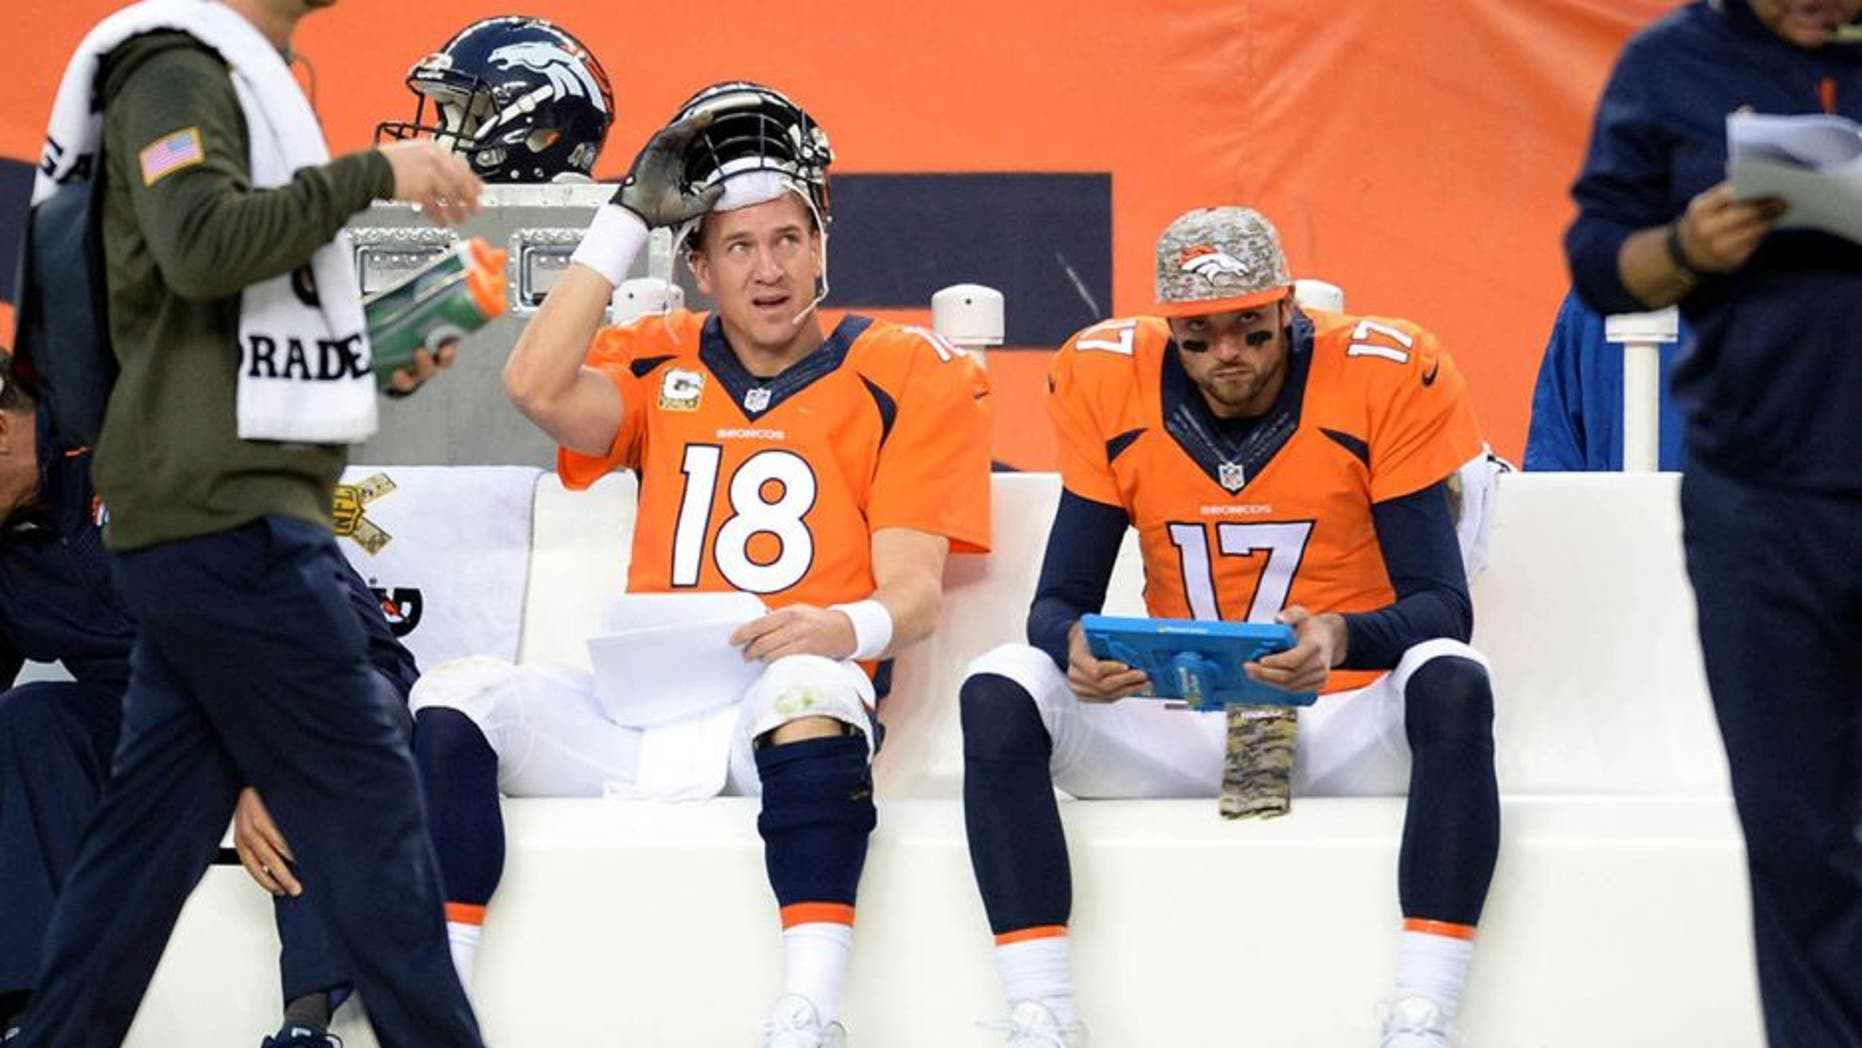 Nov 15, 2015; Denver, CO, USA; Denver Broncos quarterback Peyton Manning (18) sits on the bench along with quarterback Brock Osweiler (17) in the fourth quarter against the Kansas City Chiefs at Sports Authority Field at Mile High. Mandatory Credit: Ron Chenoy-USA TODAY Sports